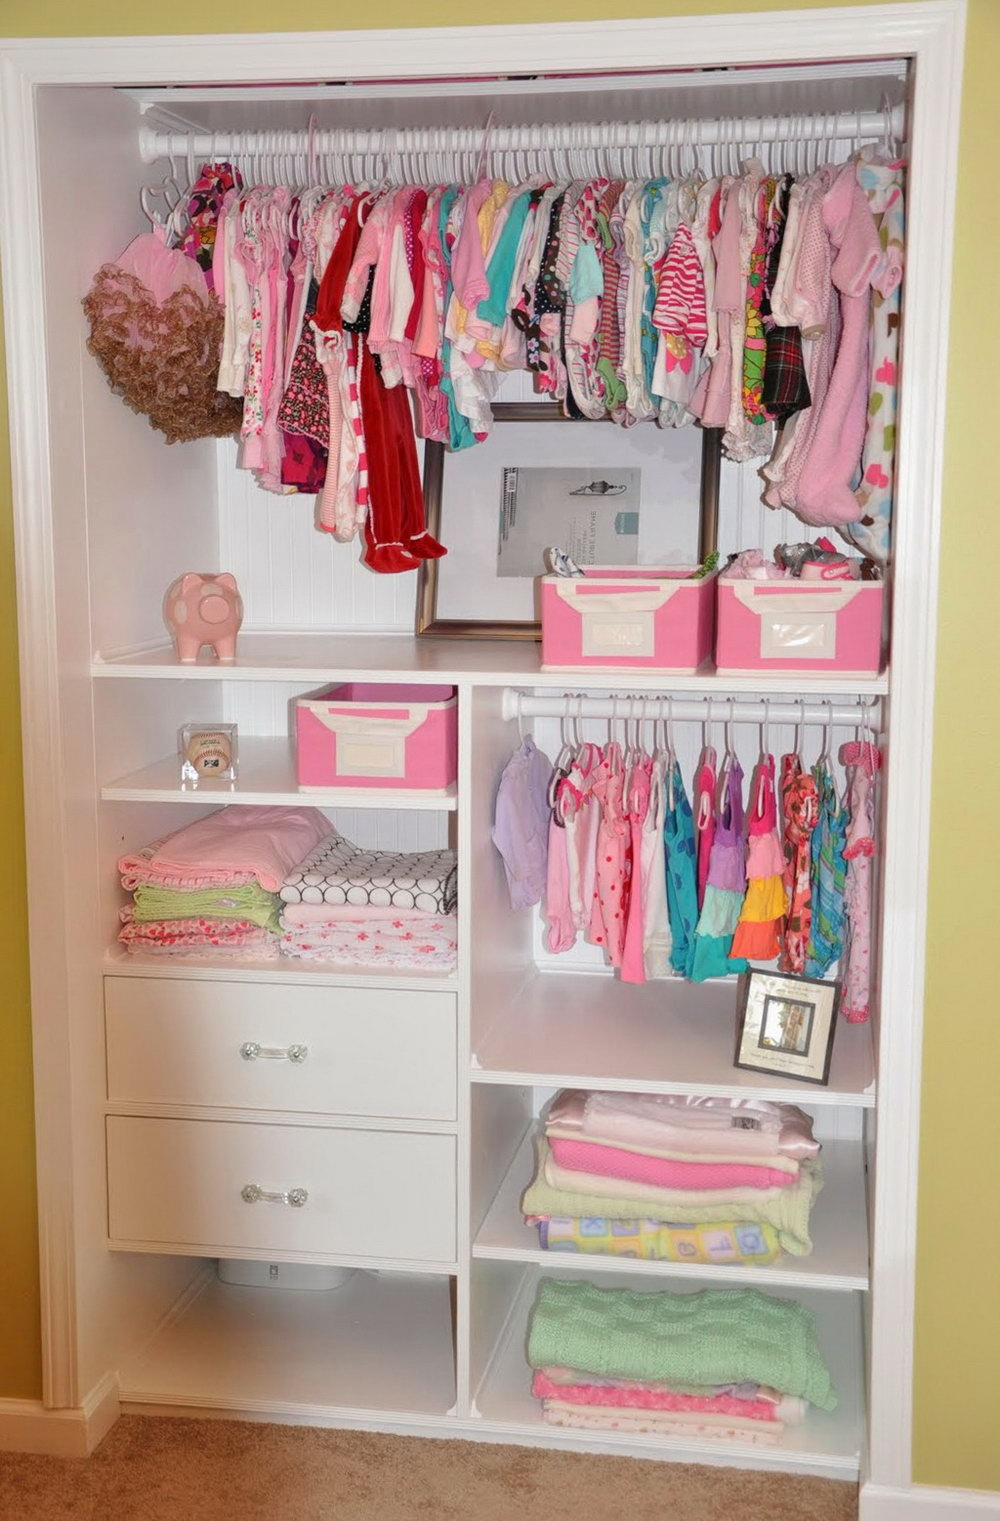 Closet Storage Ideas For Kidscloset Storage Ideas For Kidscloset Storage Ideas For Kids